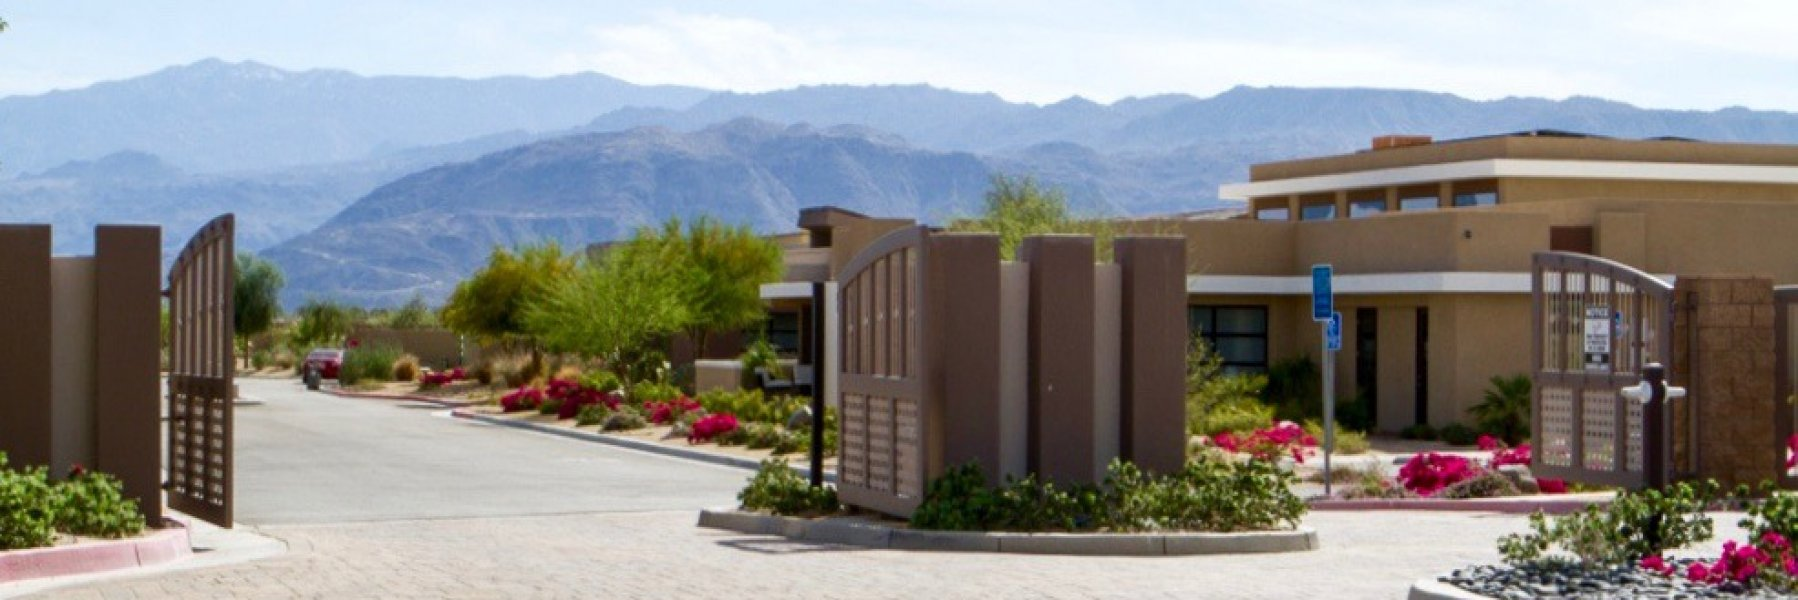 Estilo is a community of homes in Rancho Mirage California